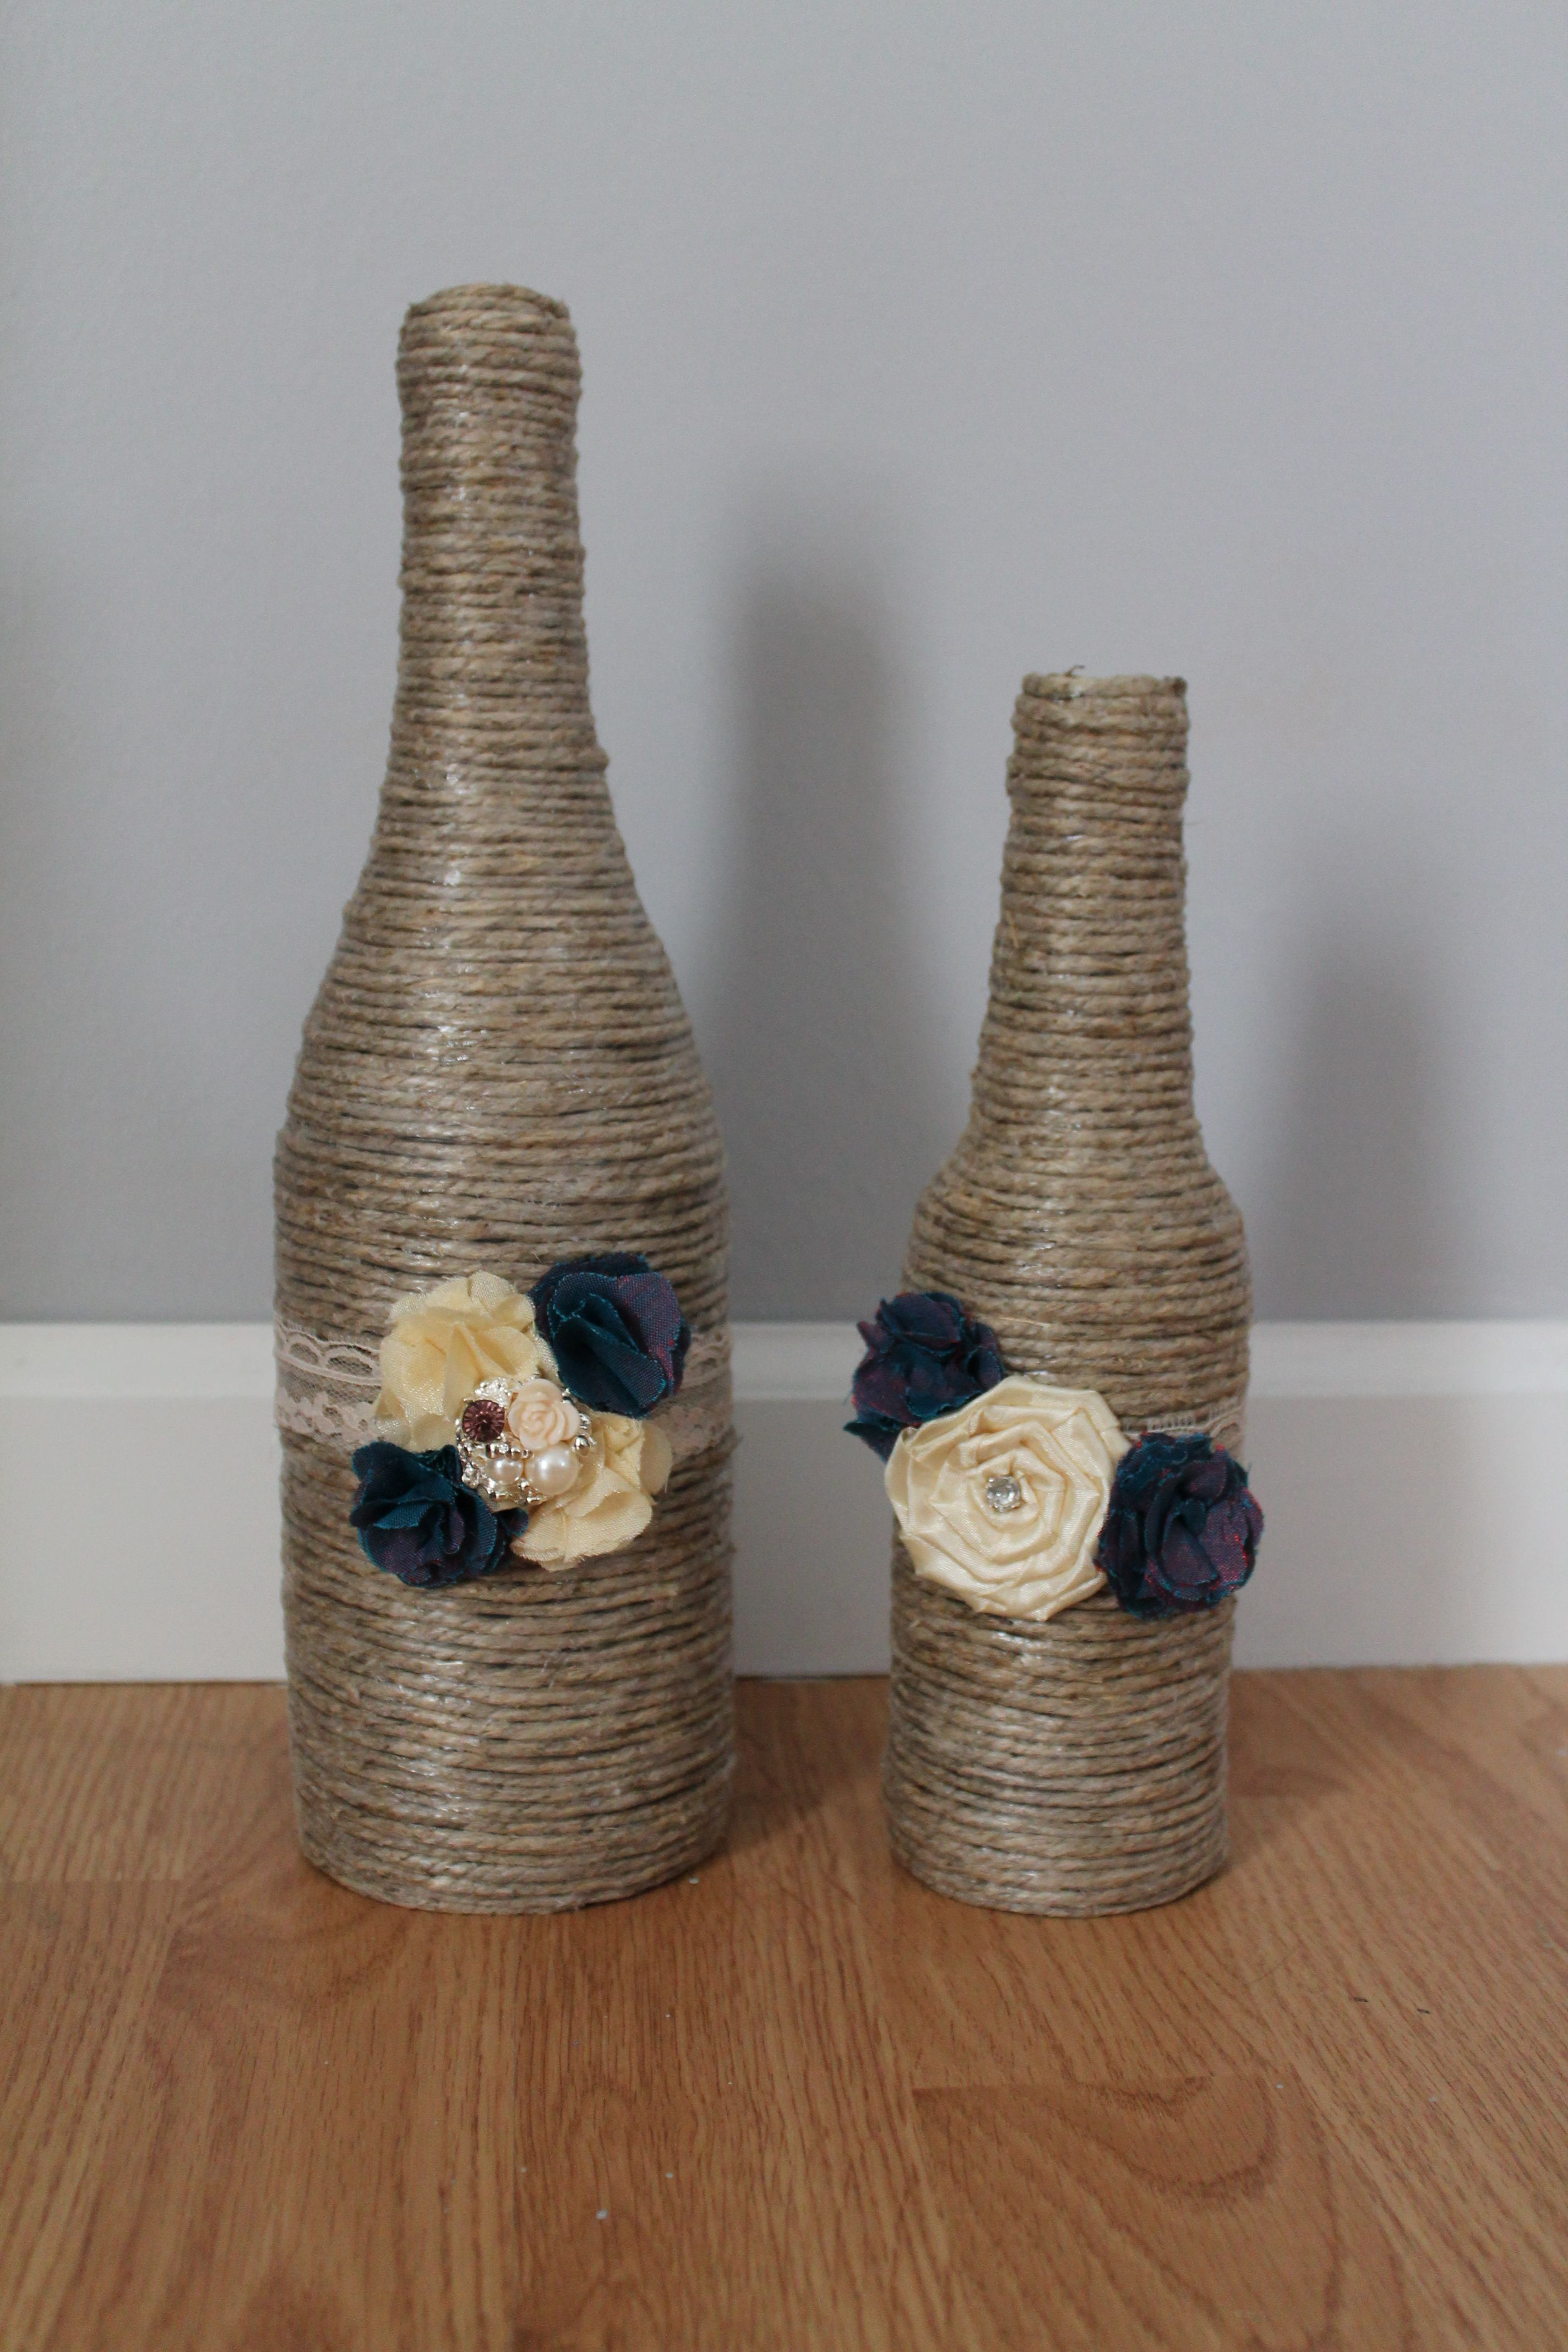 Homemade Home Decor Great Idea For Mother's Day! Home And